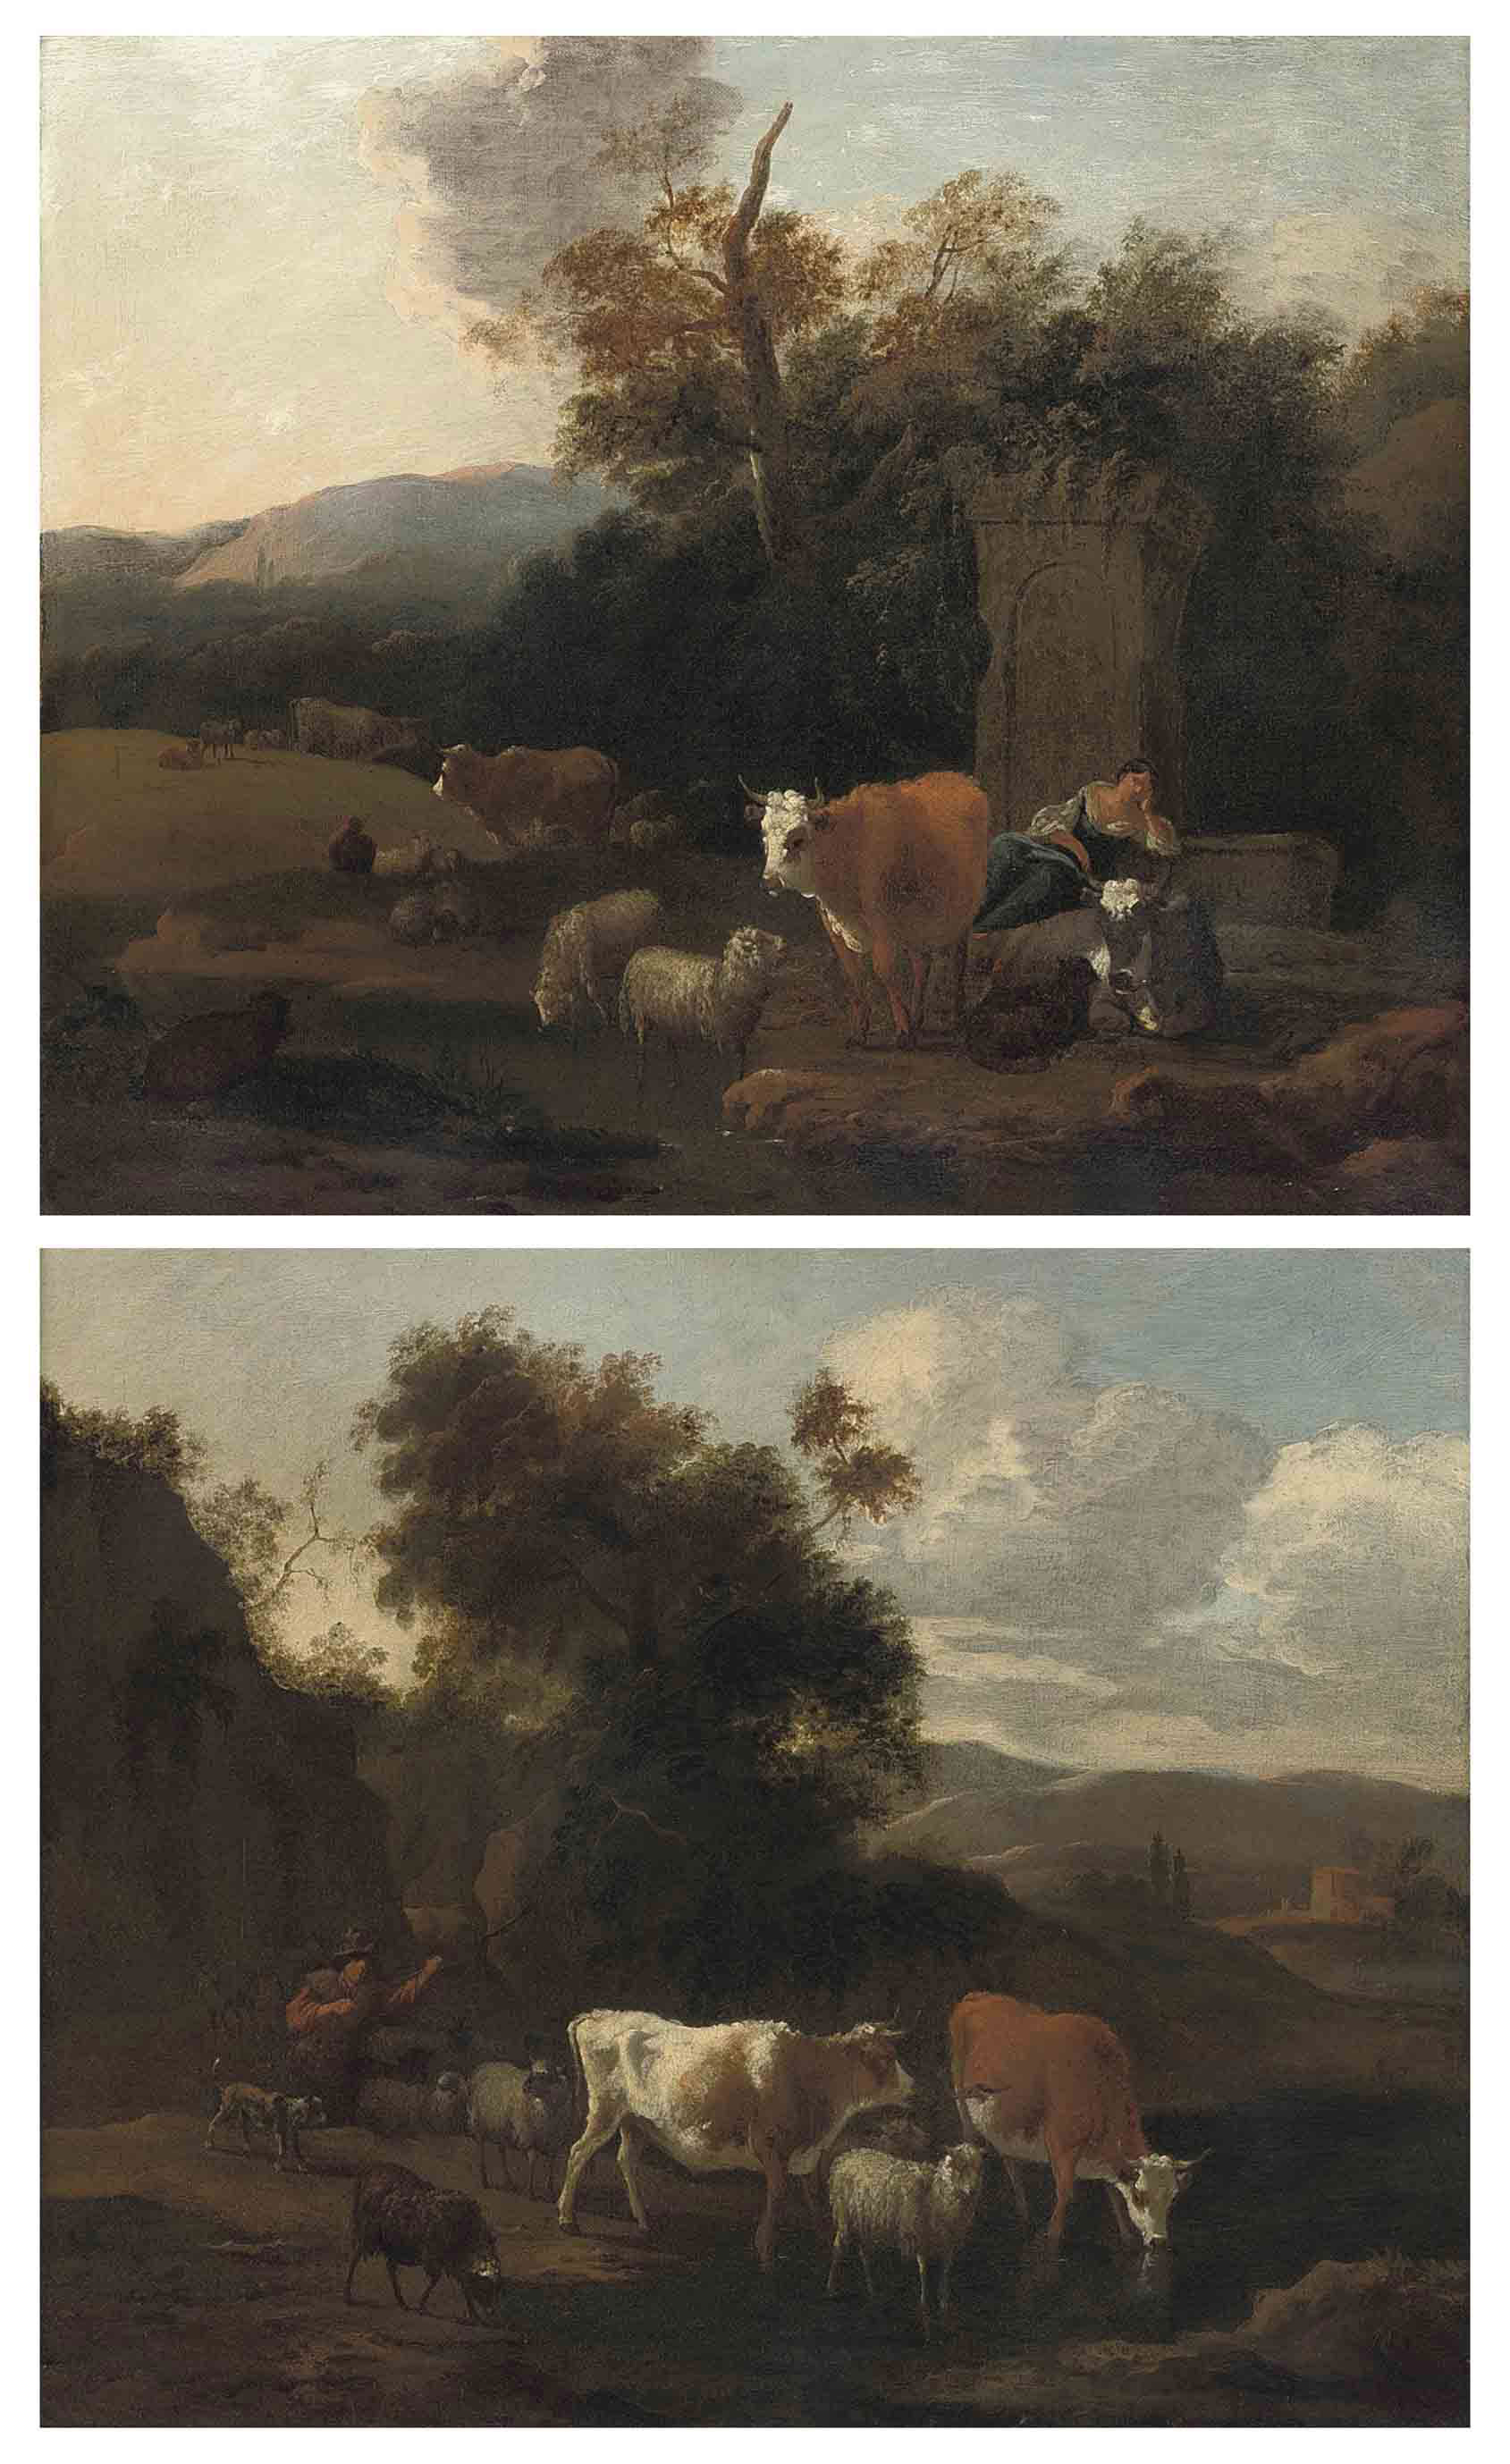 A wooded landscape with a drover and her cattle at rest by classical ruins; and A wooded river landscape with a drover and his cattle watering